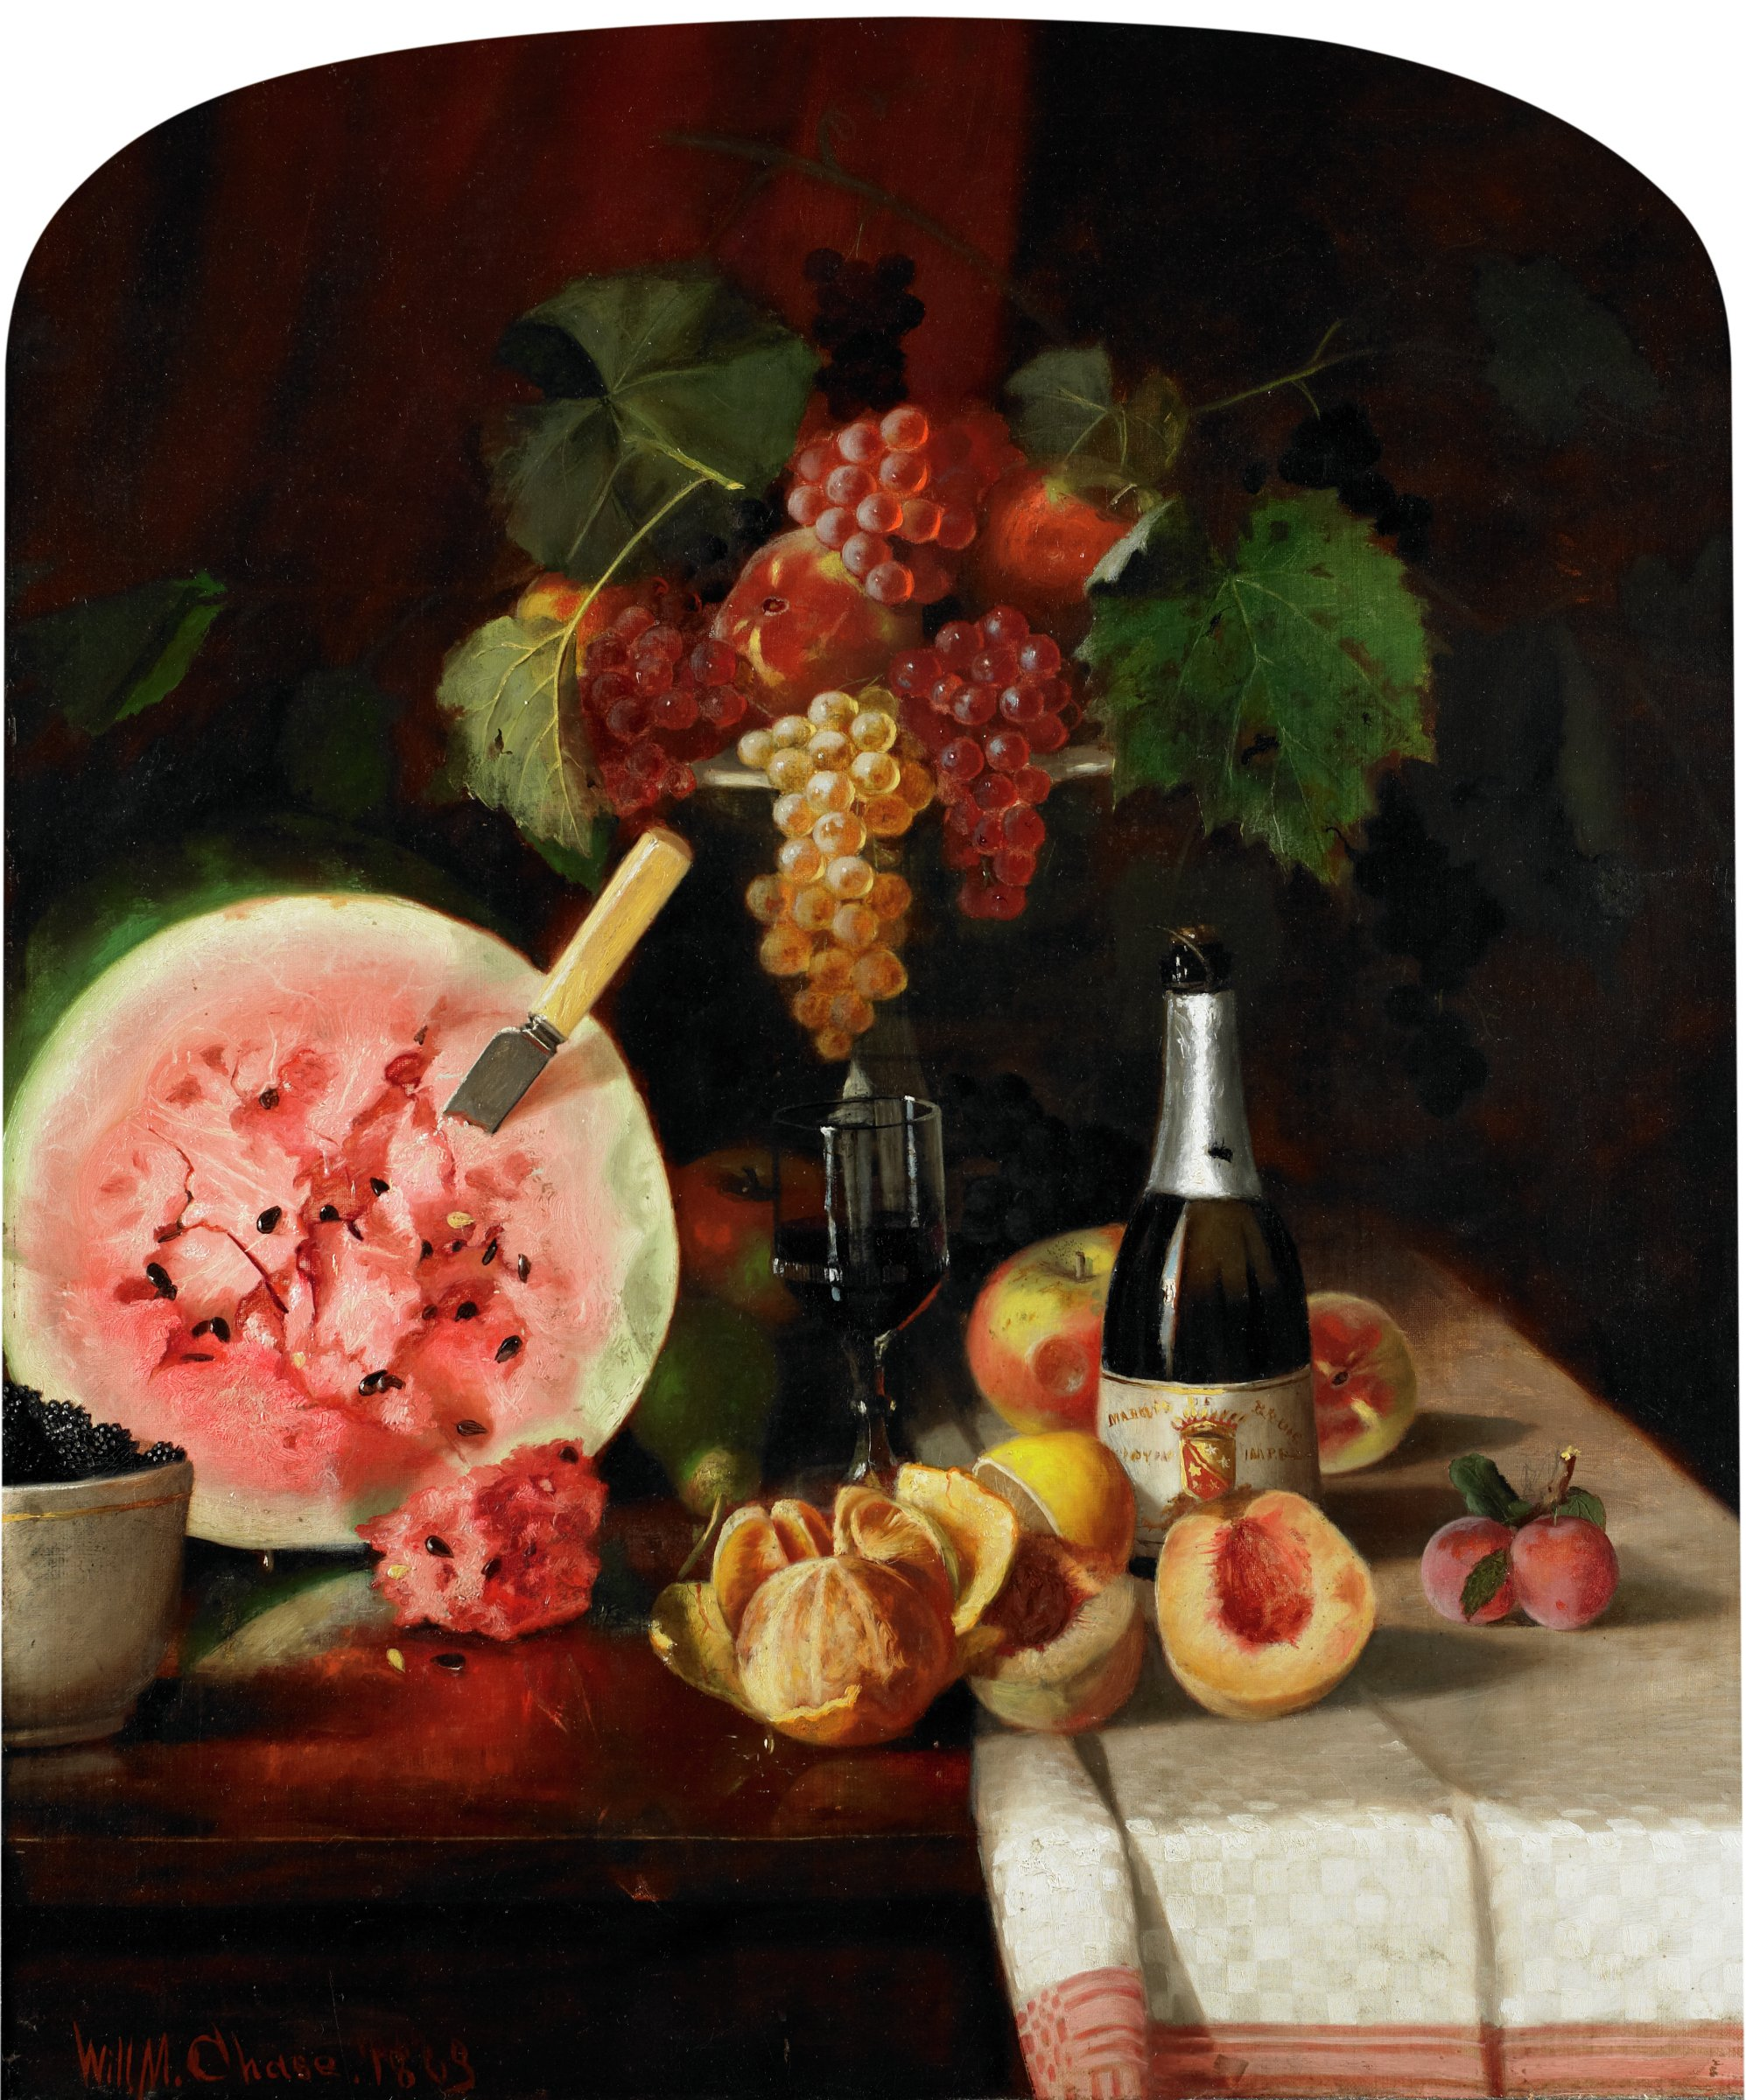 In this still life, fruit and a bottle of wine are situated on a table. From left to right, the composition includes blackberries in a bowl, half of a watermelon with a knife protruding and a piece carved off in front, a partially peeled orange, one half of a halved lemon, both halves of a halved peach, and a bunch of plums with stems and leaves still attached. Behind the halved peach is the bottle of wine, and behind the bottle of wine are two apples. To the left of the bottle of wine is a partially filled wine glass, and behind the glass is a pedestal holding apples and bunches of grapes. The painting is on a dark background. The right of the table is covered in a red and white table cloth.